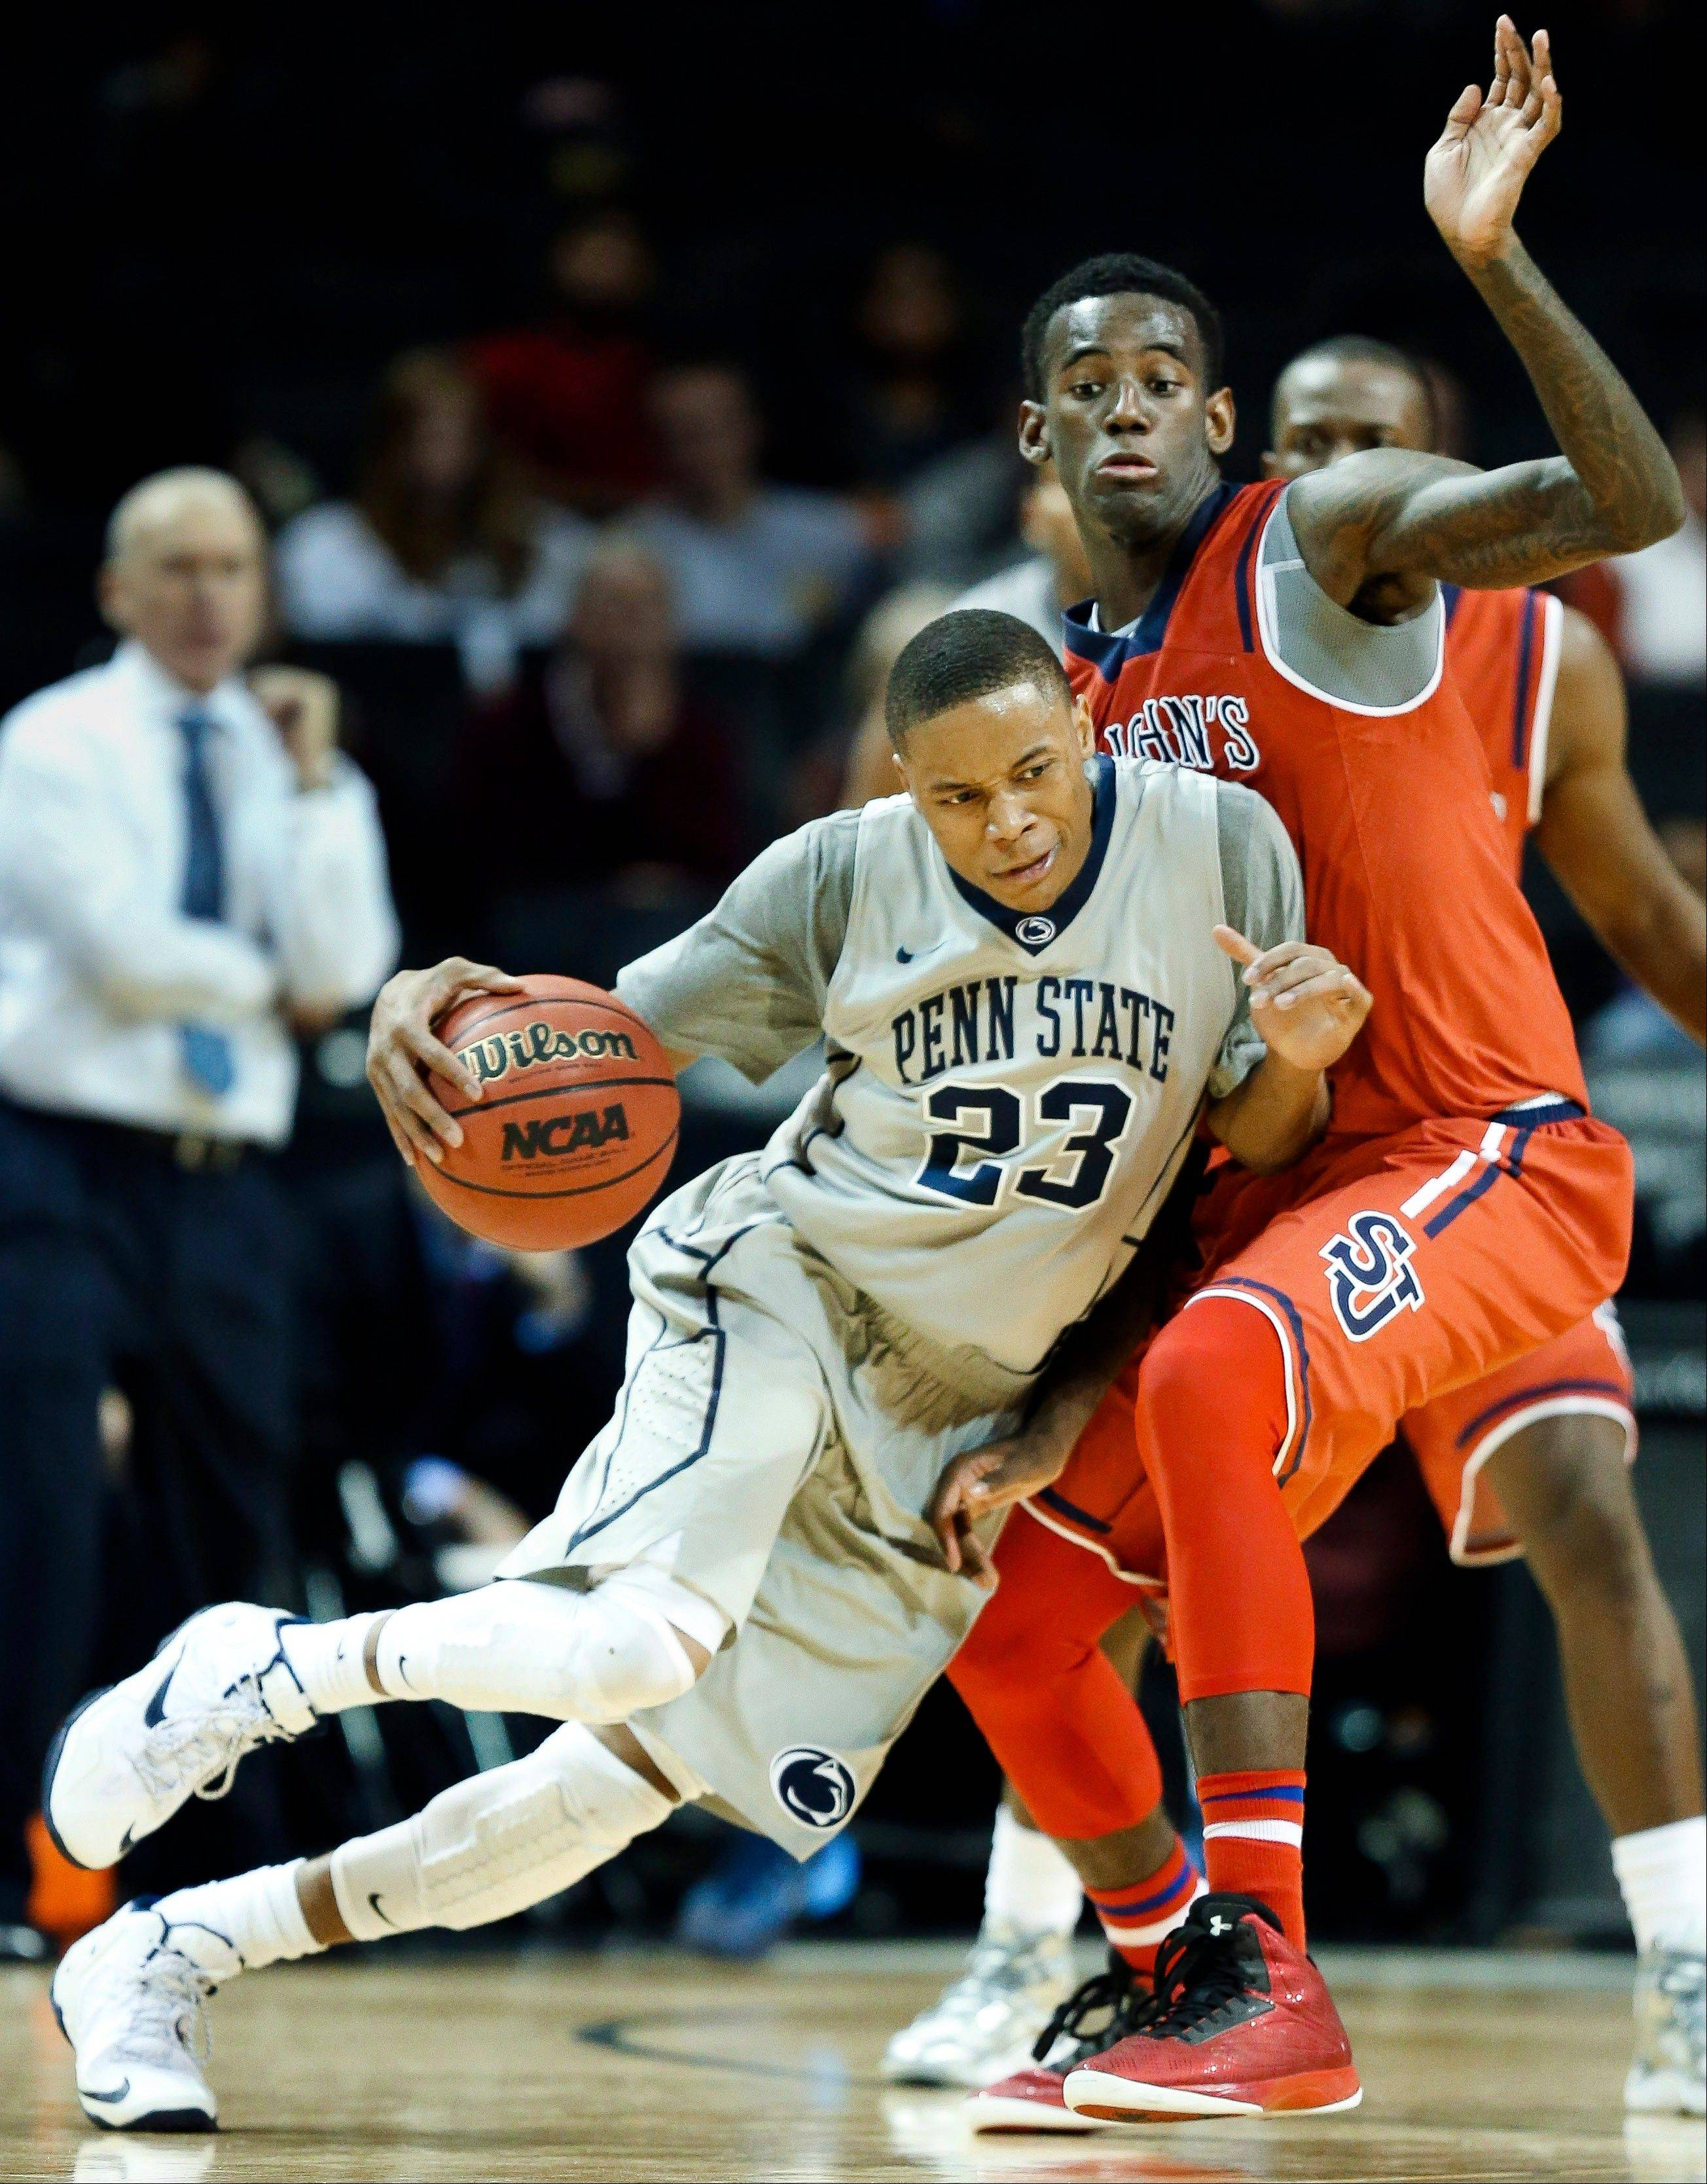 Penn State outlasts St John's in OT